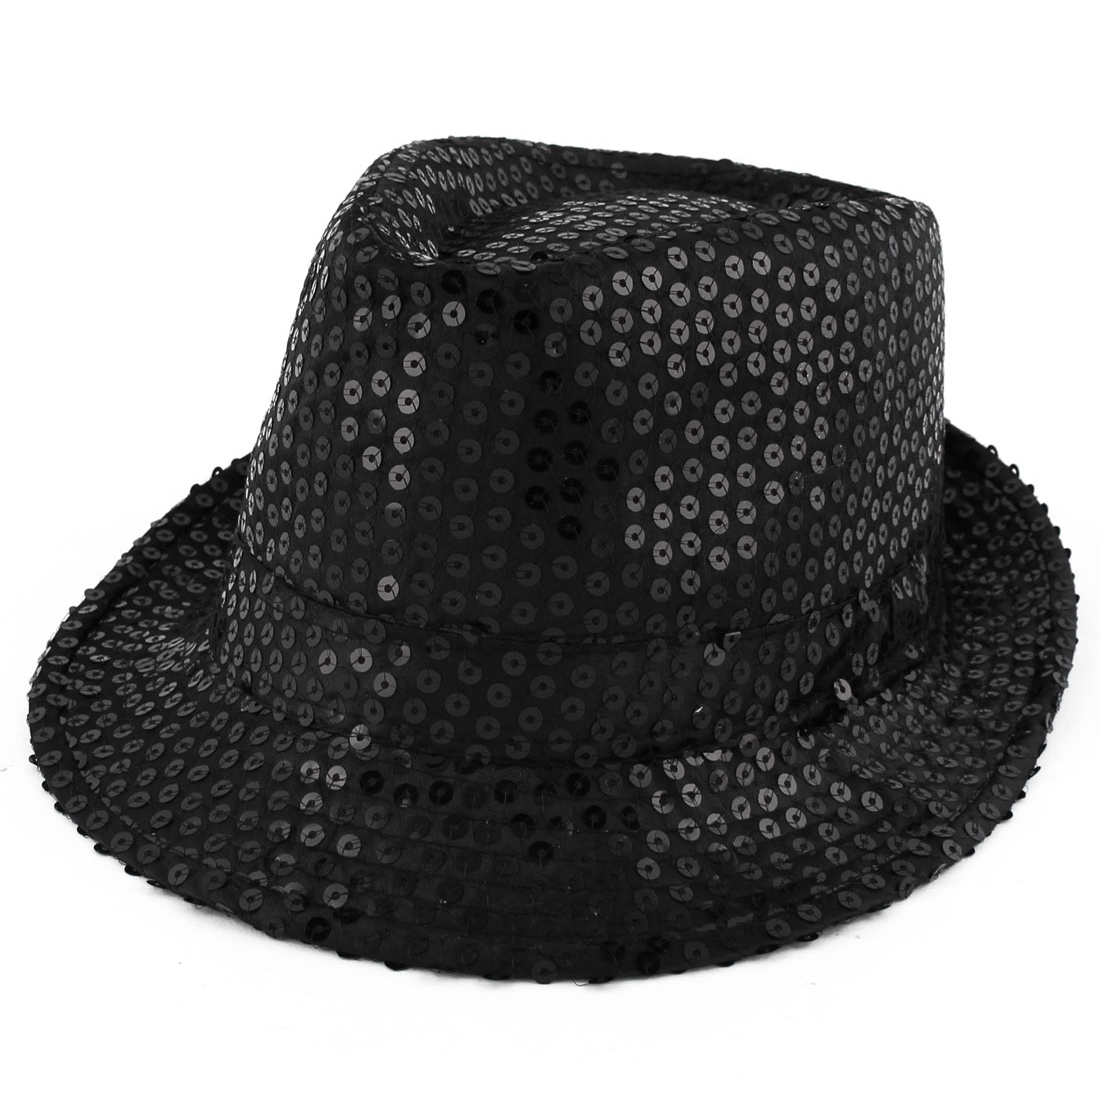 Men Women Sequins Detailing Leisure Style New fashion Bling Jazz Hat Black